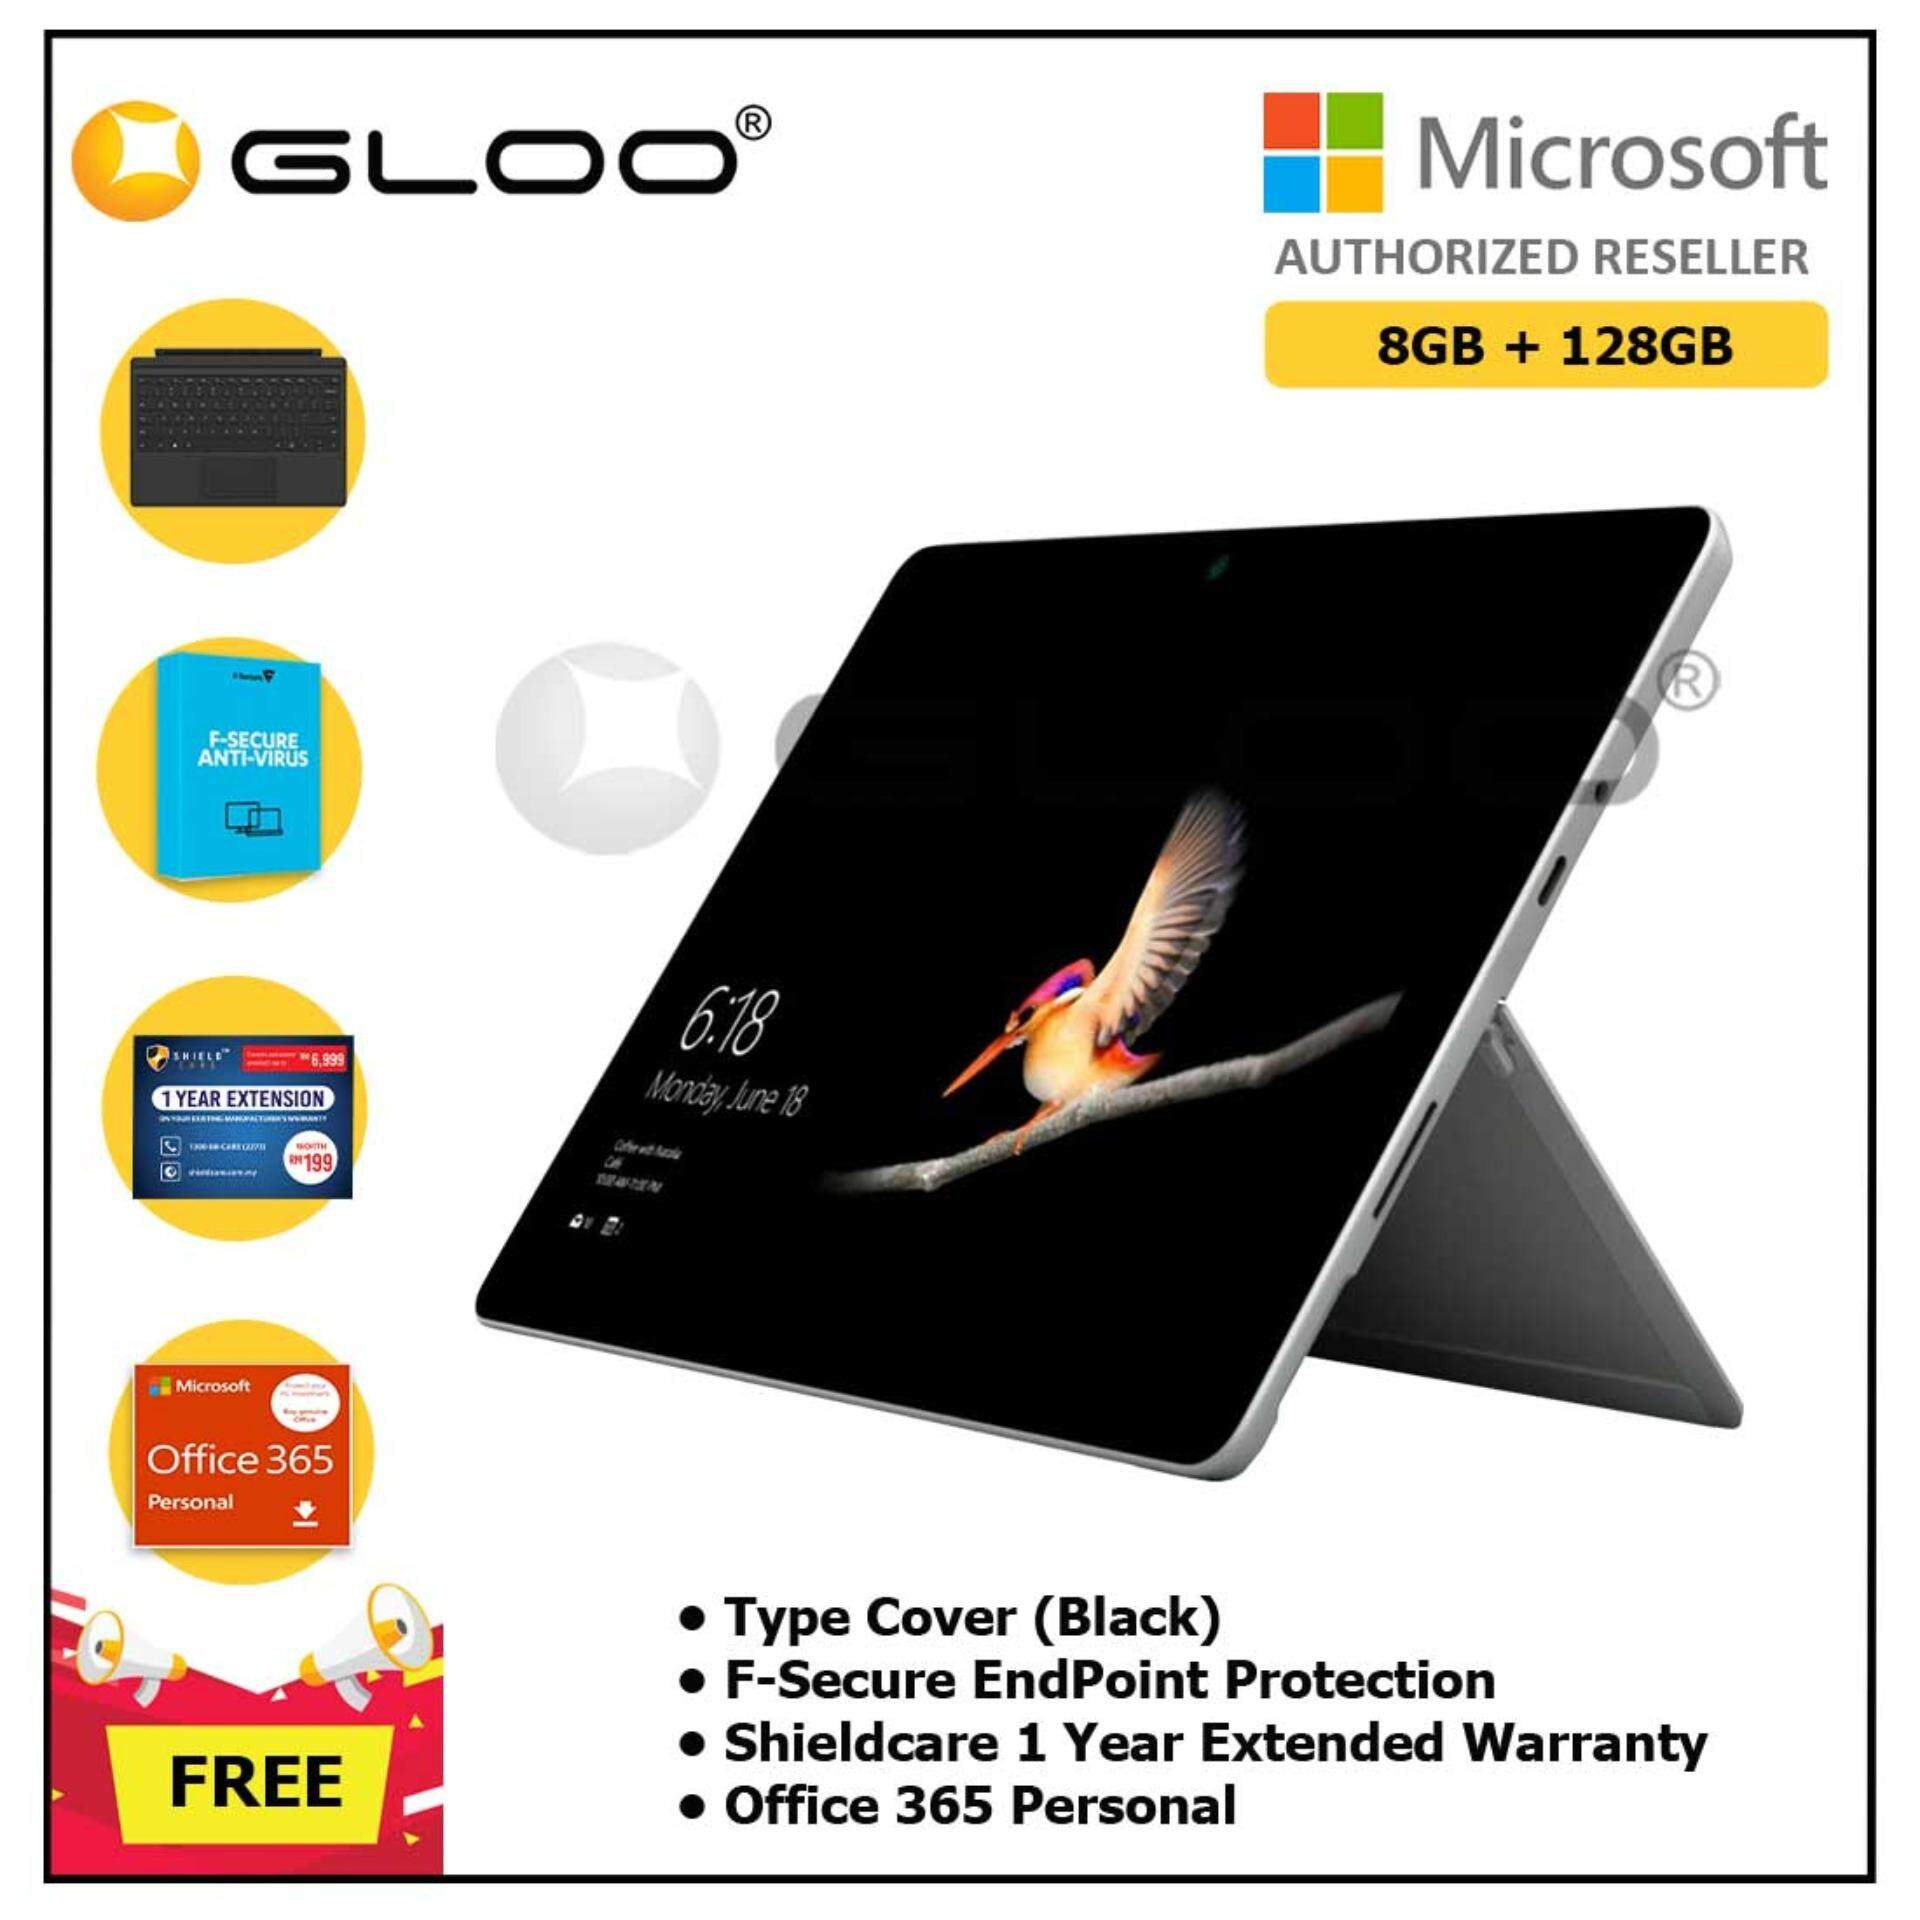 Microsoft Surface Go Y/8GB 128GB + Surface Go Type Cover Black + Shieldcare 1 Year Entended Warranty + F-Secure Endpoint Protection + Office 365 Personal